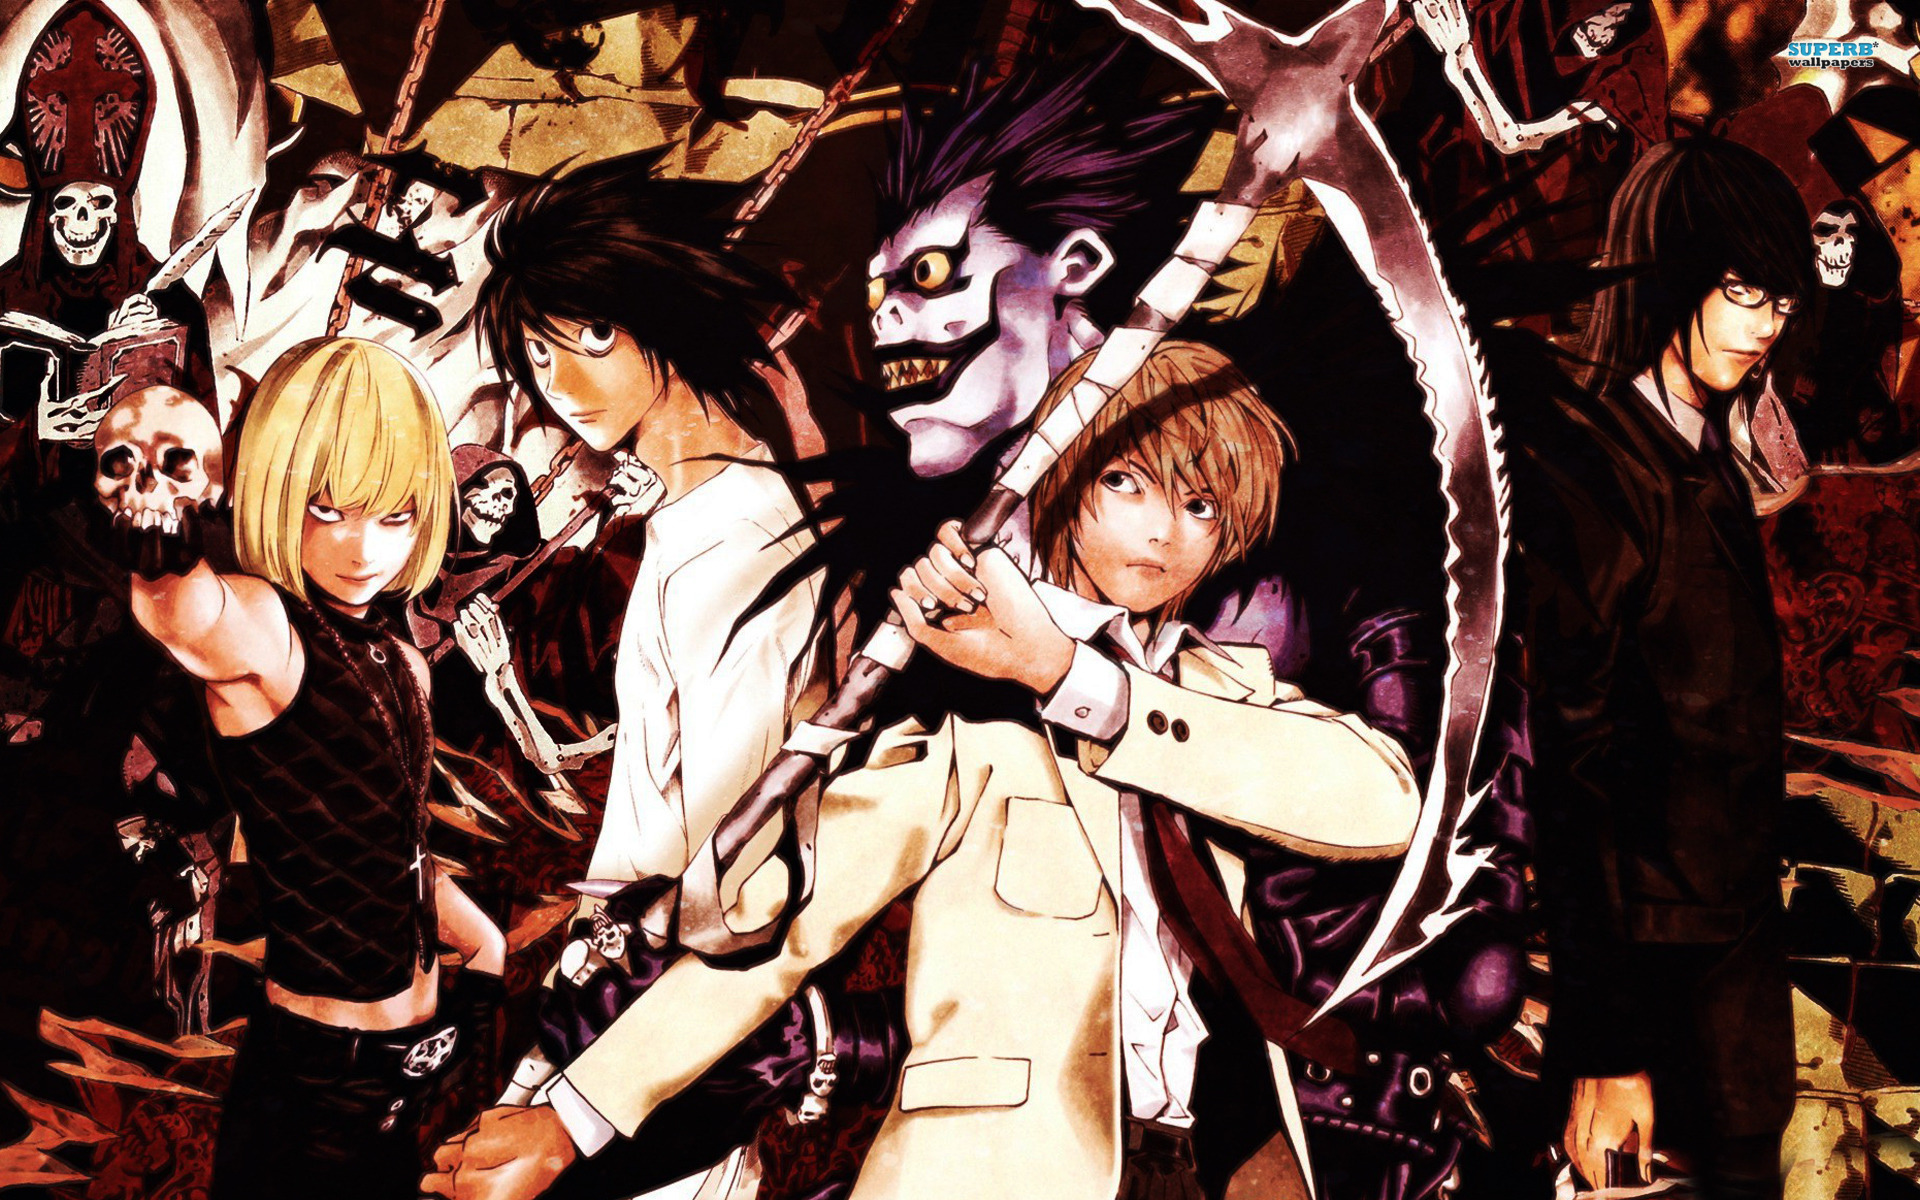 Live Action Death Note Gets A Good Director